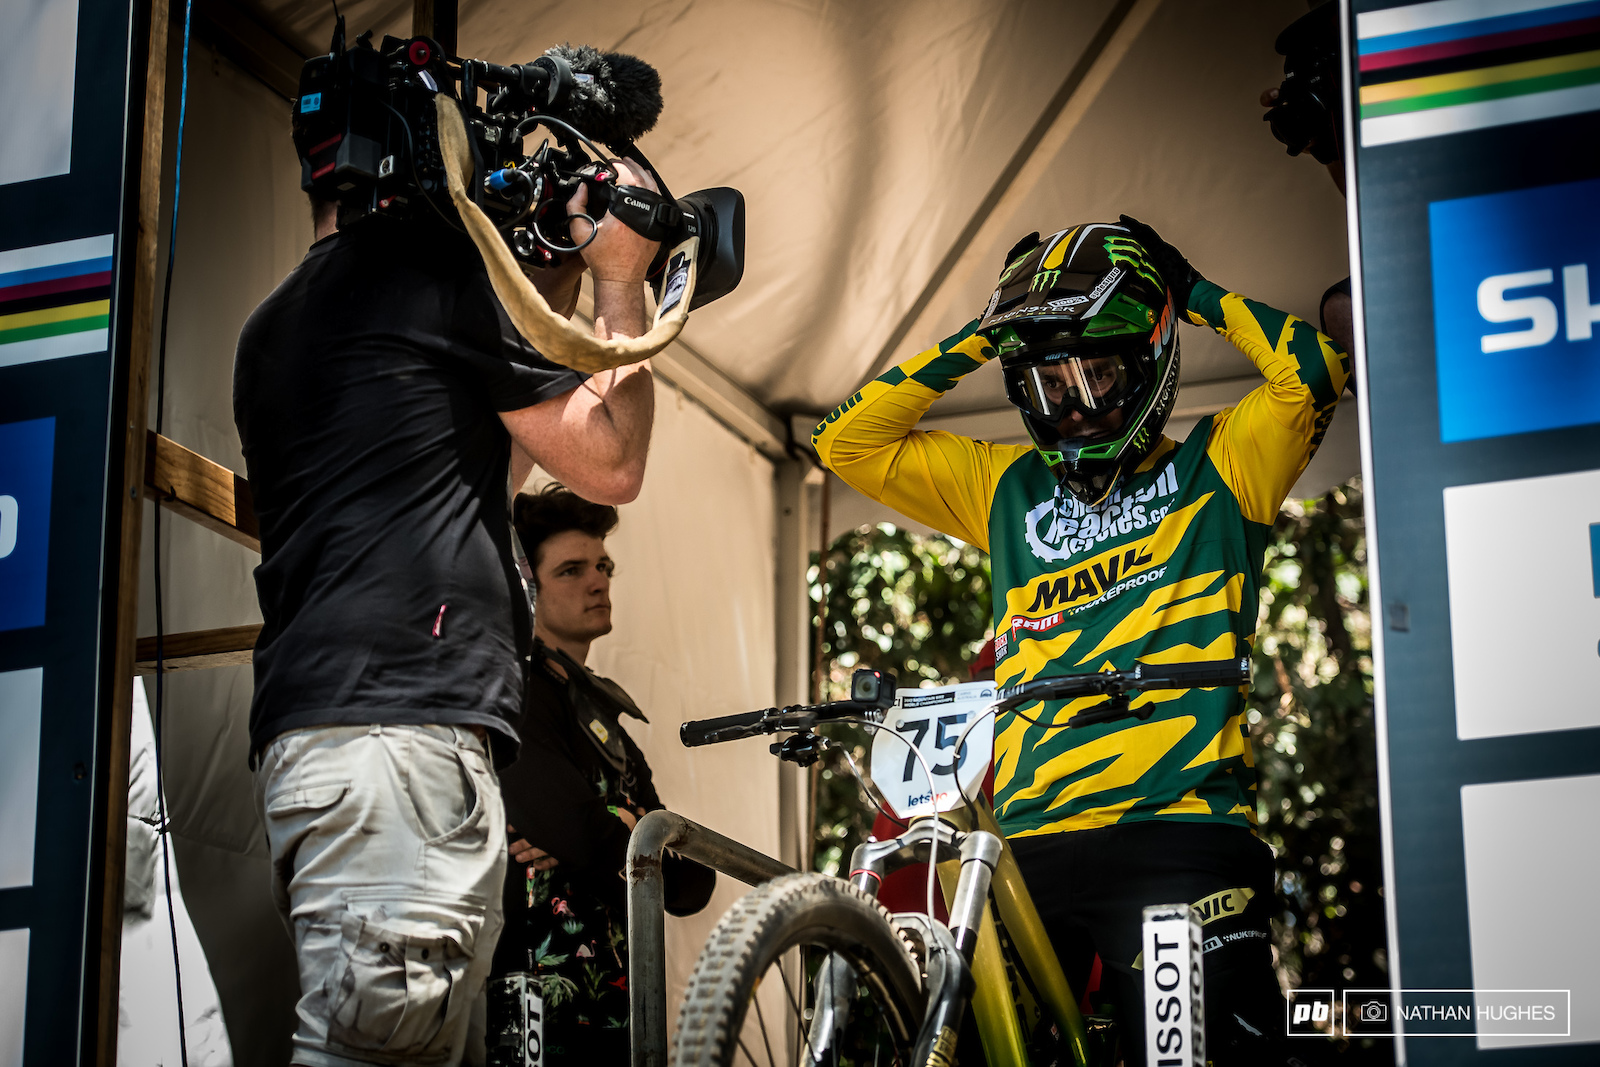 Hill preps to drop in on his last ever World Champs and indeed last ever downhill race.